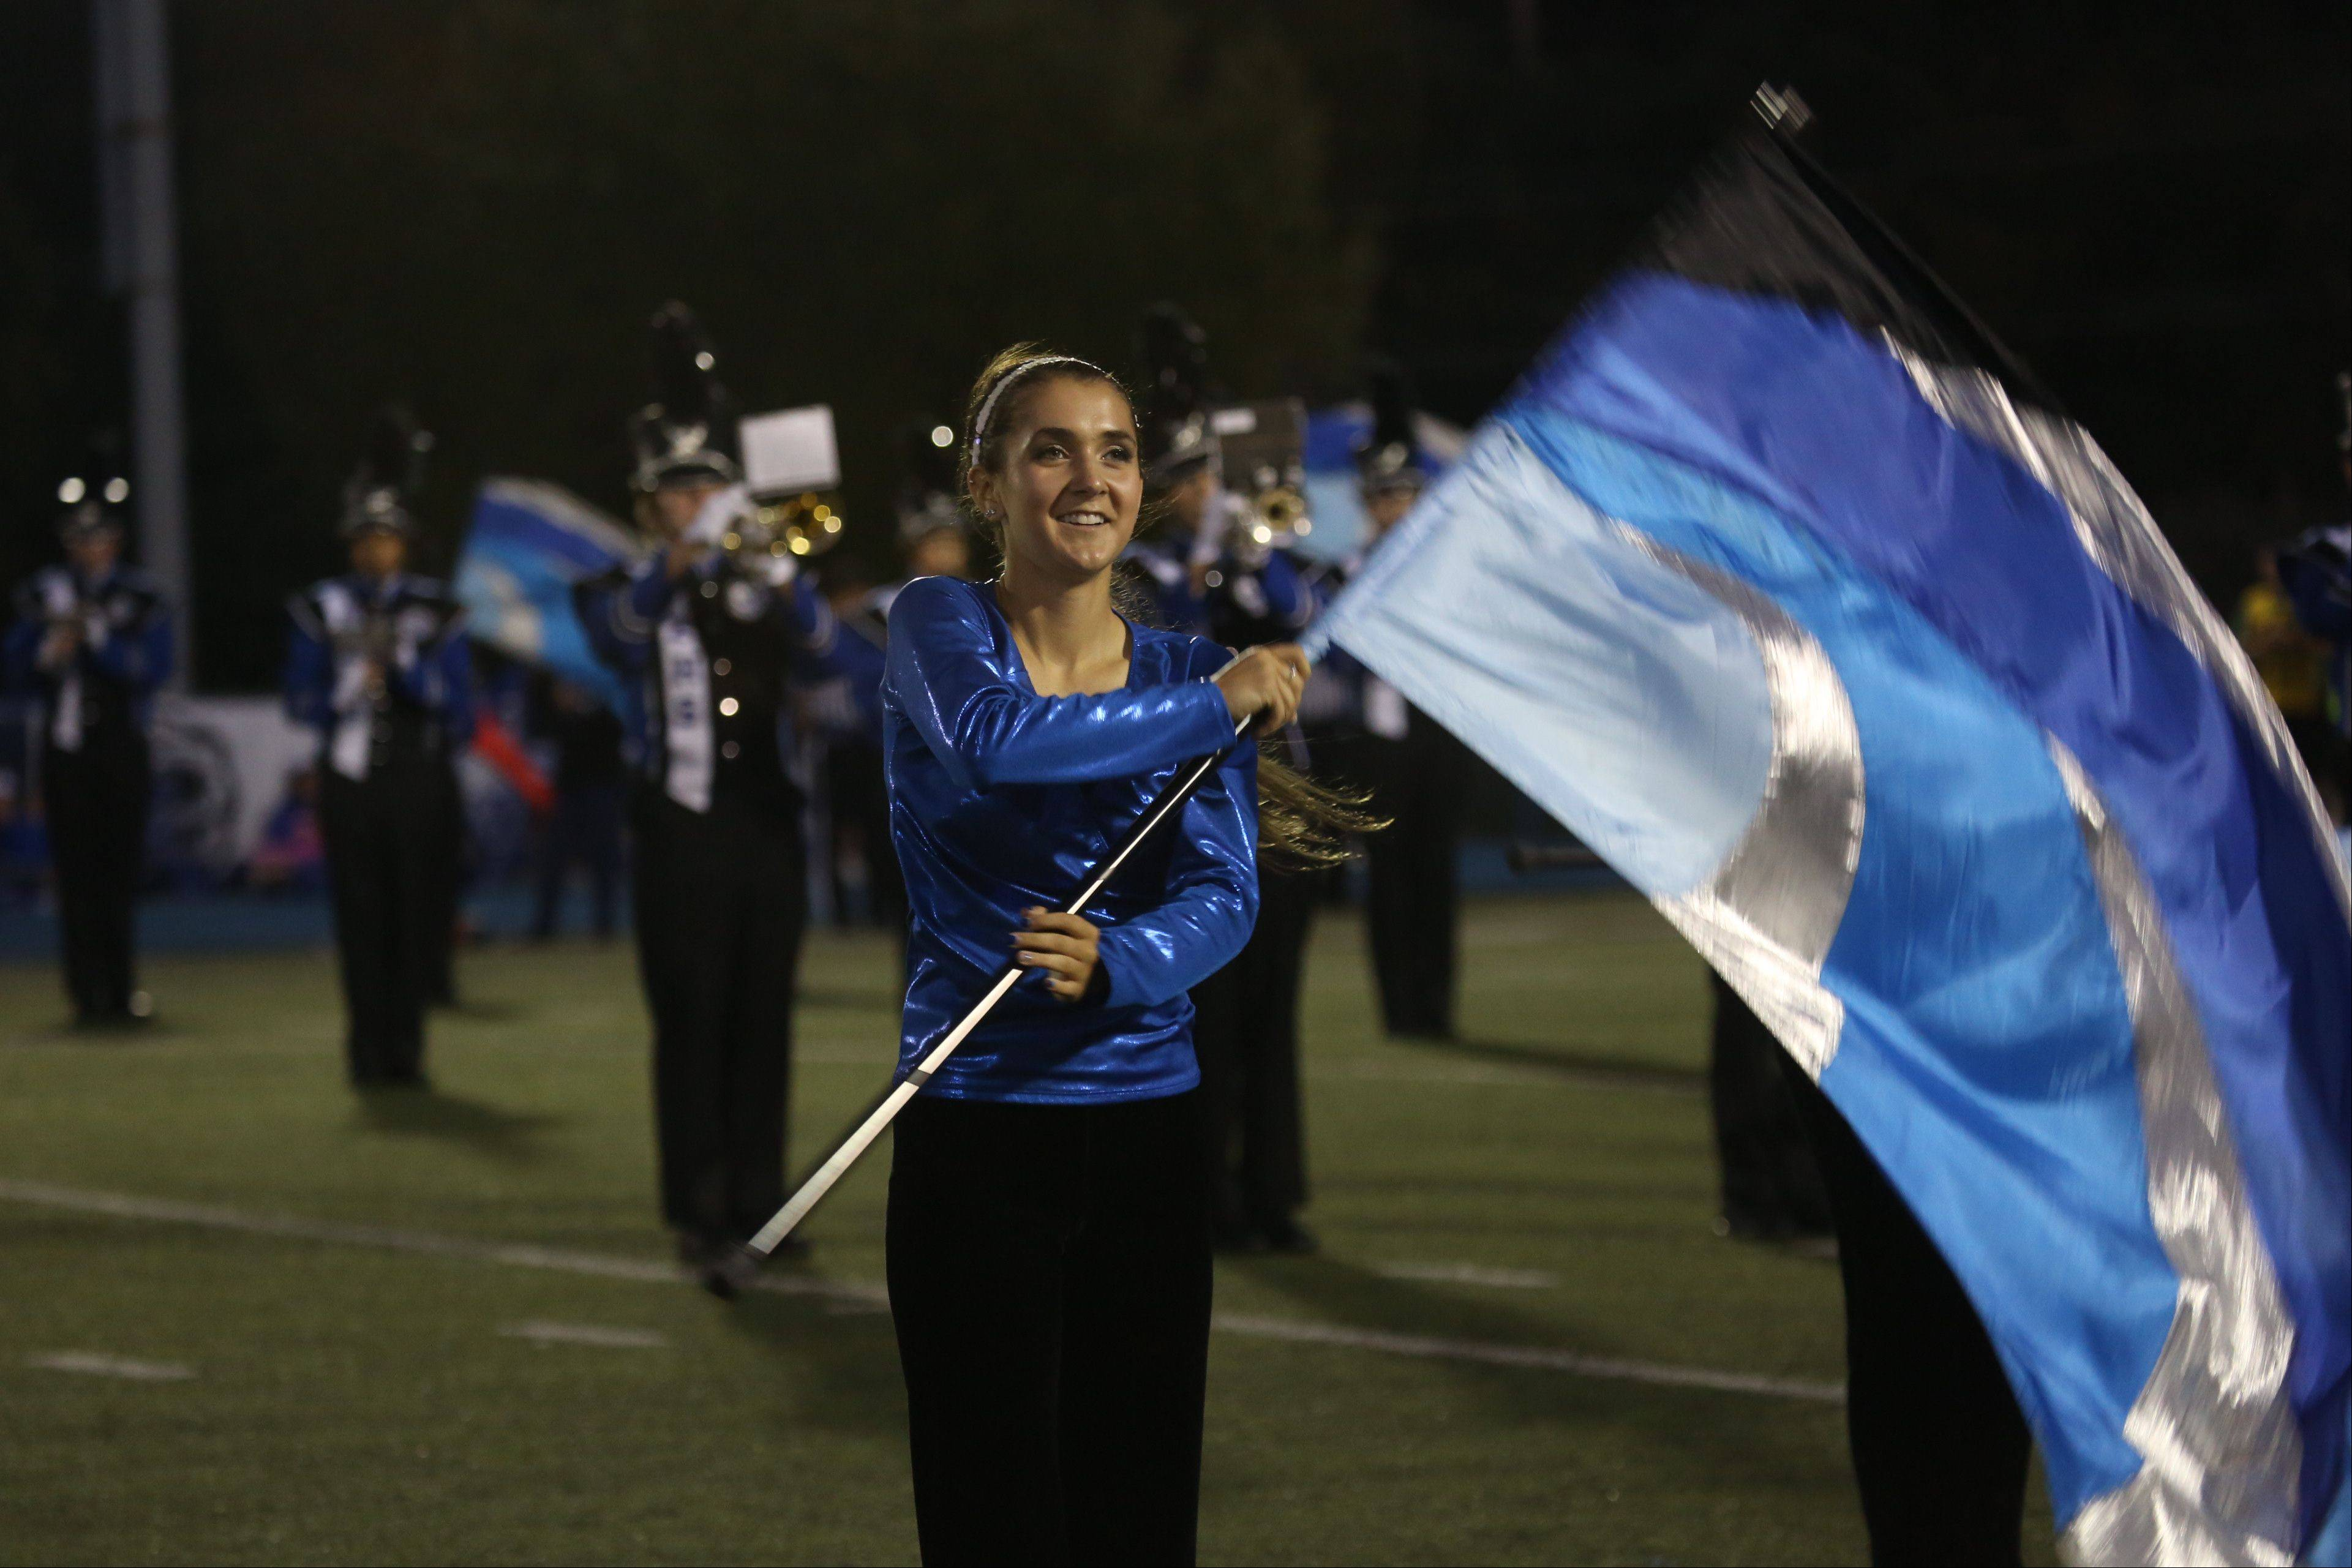 Week -3- Photos from the Warren at Lake Zurich football game on Thursday, Sept. 12.